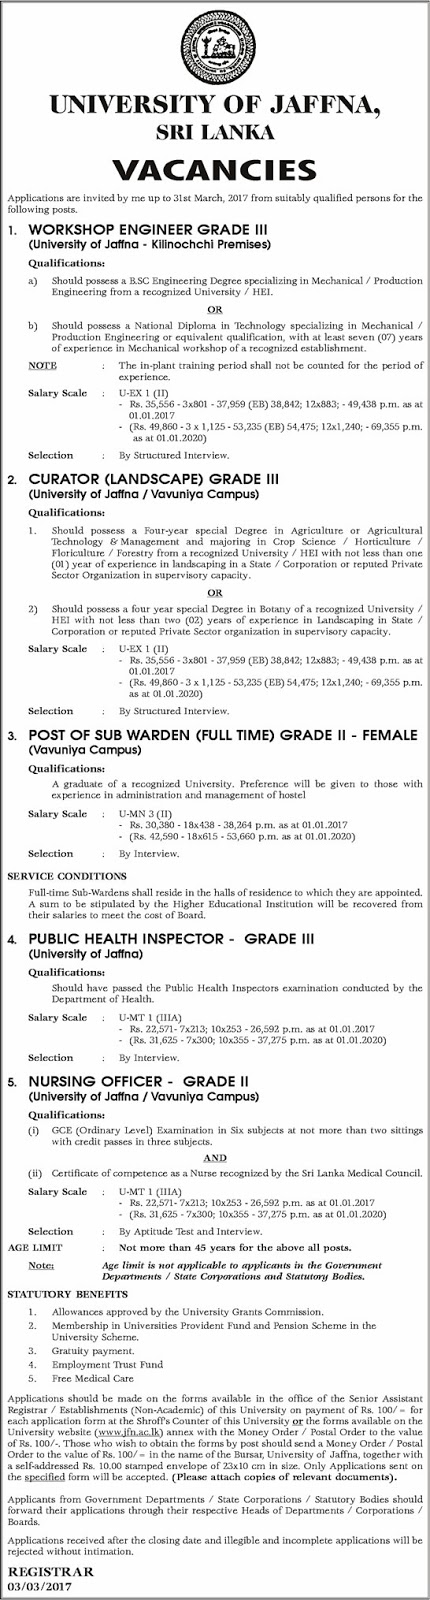 Sri Lankan Government Job Vacancies at University of Jaffna for Workshop Engineer, Curator (Landscape), Sub Warden (Female), Public Health Inspector, Nursing Officer